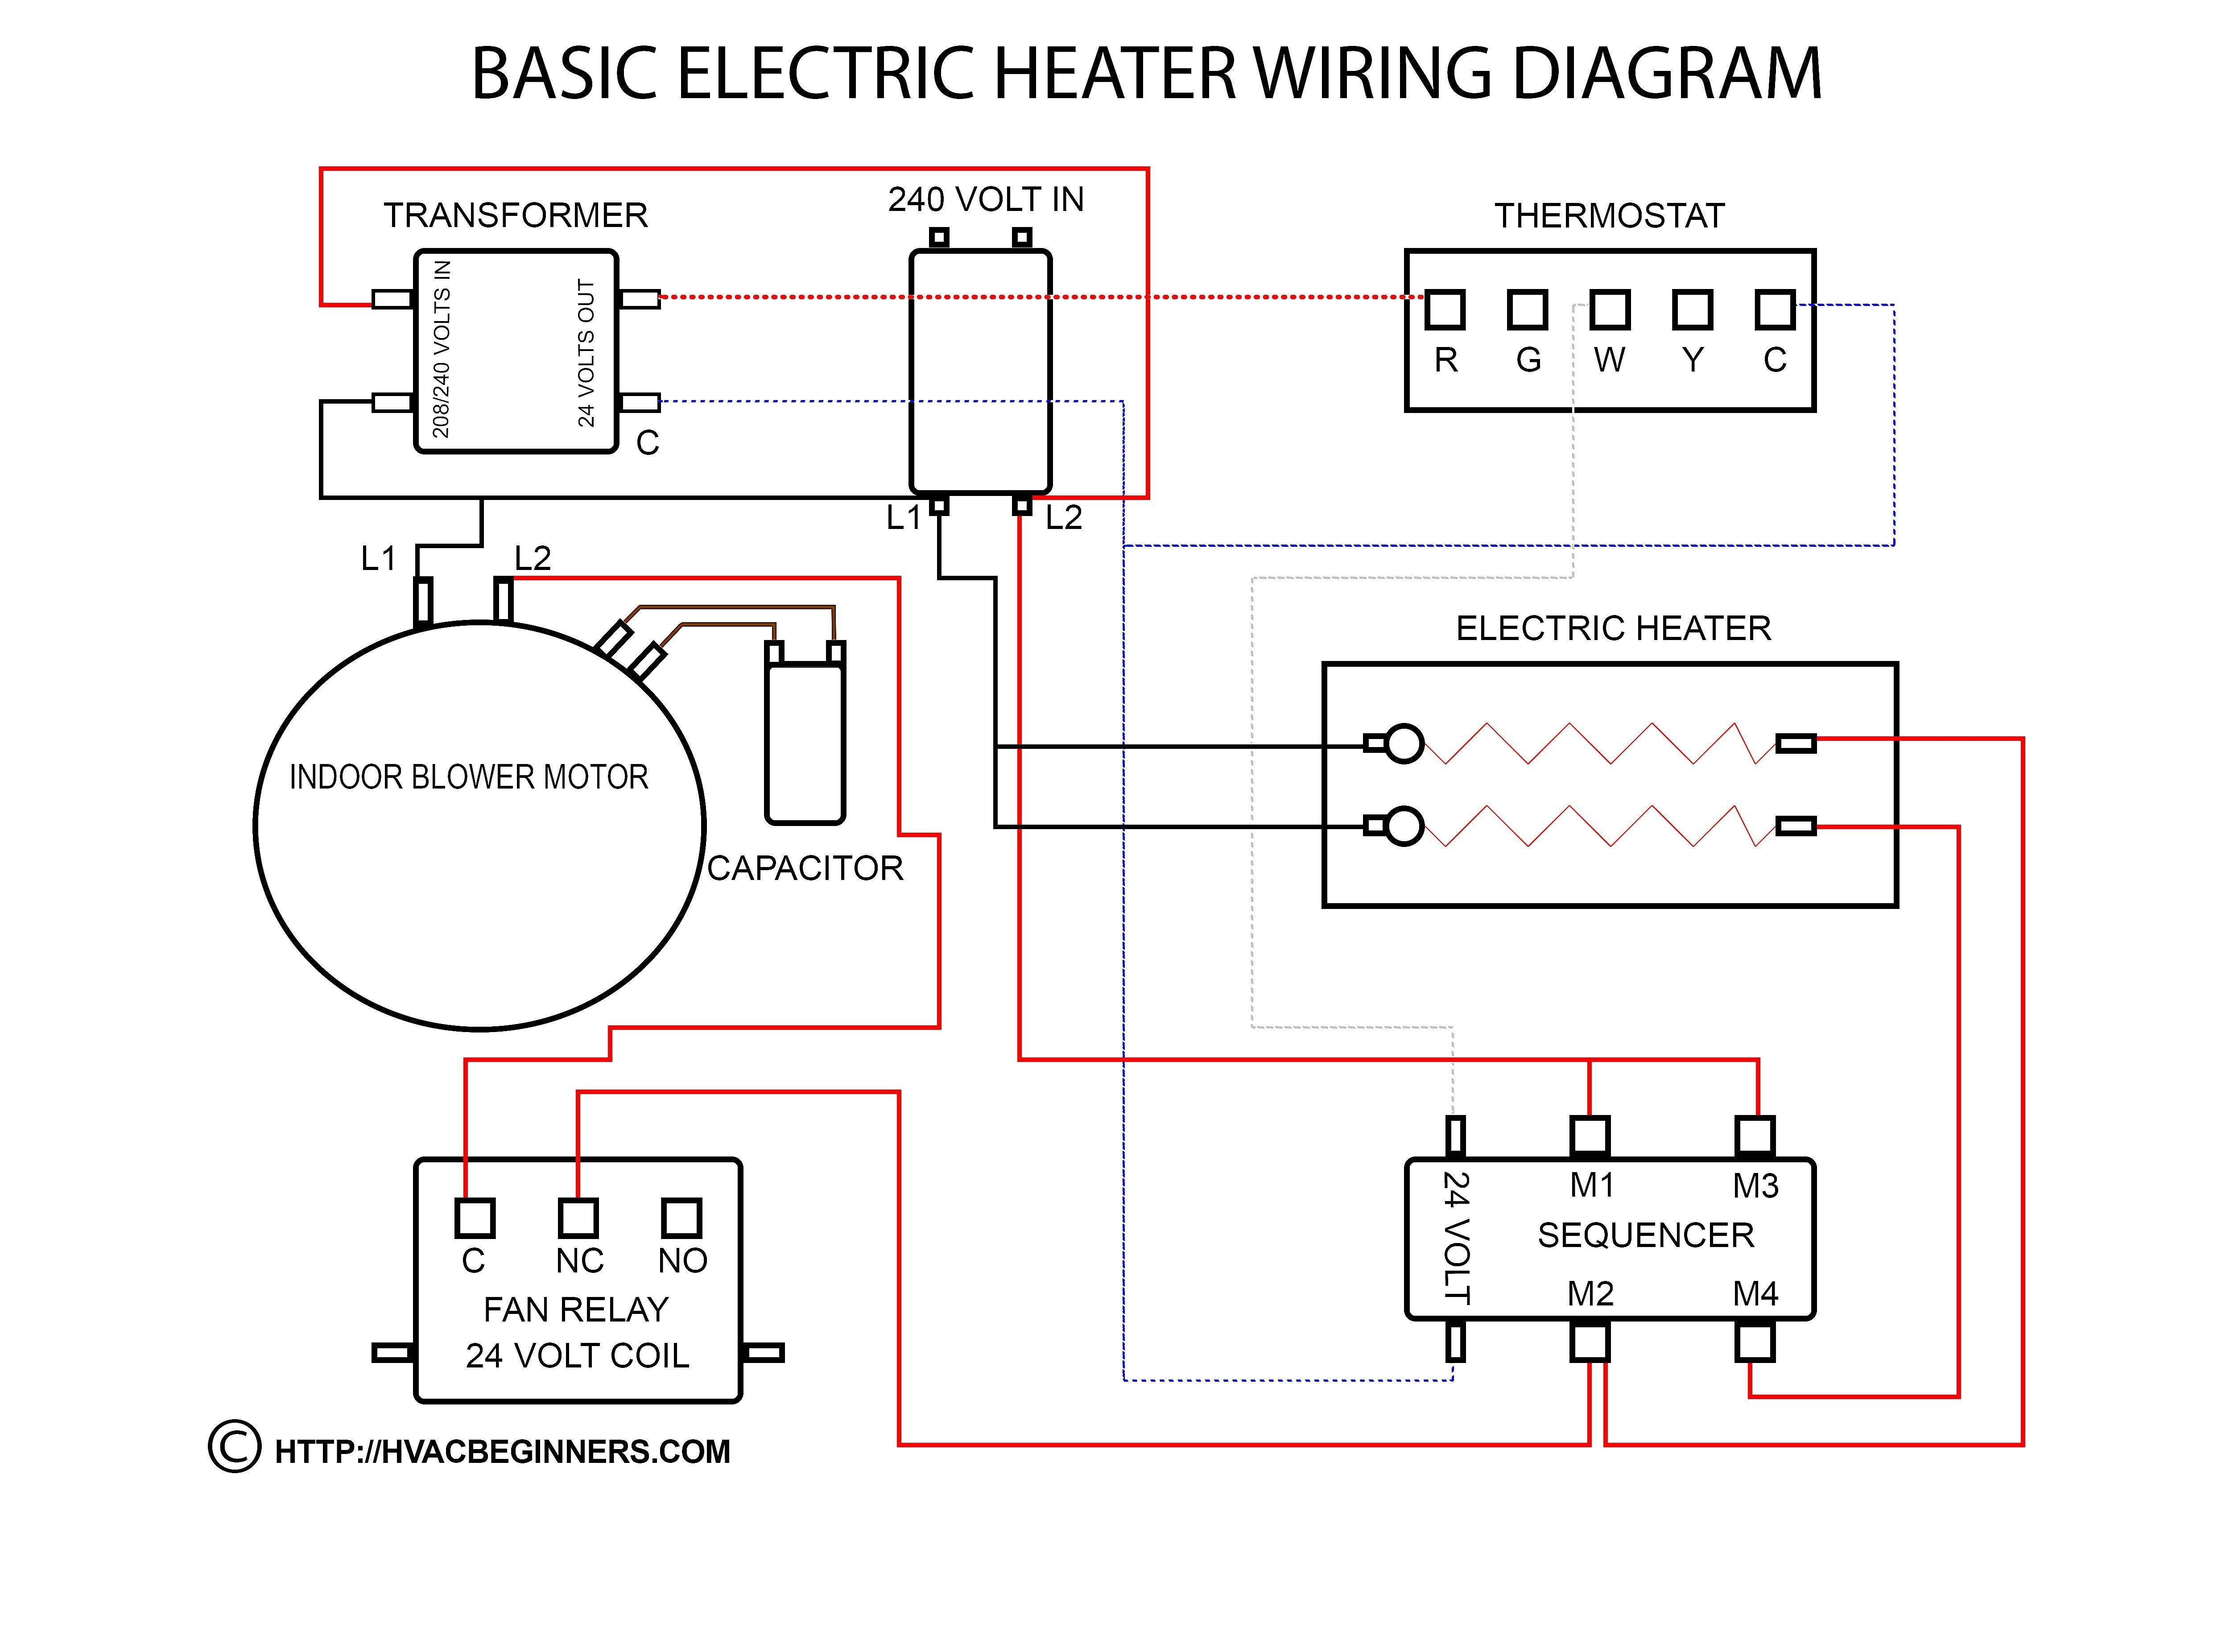 Unique Wiring Diagram For Mechanically Held Lighting Contactor Electrical Wiring Diagram Electrical Circuit Diagram Diagram